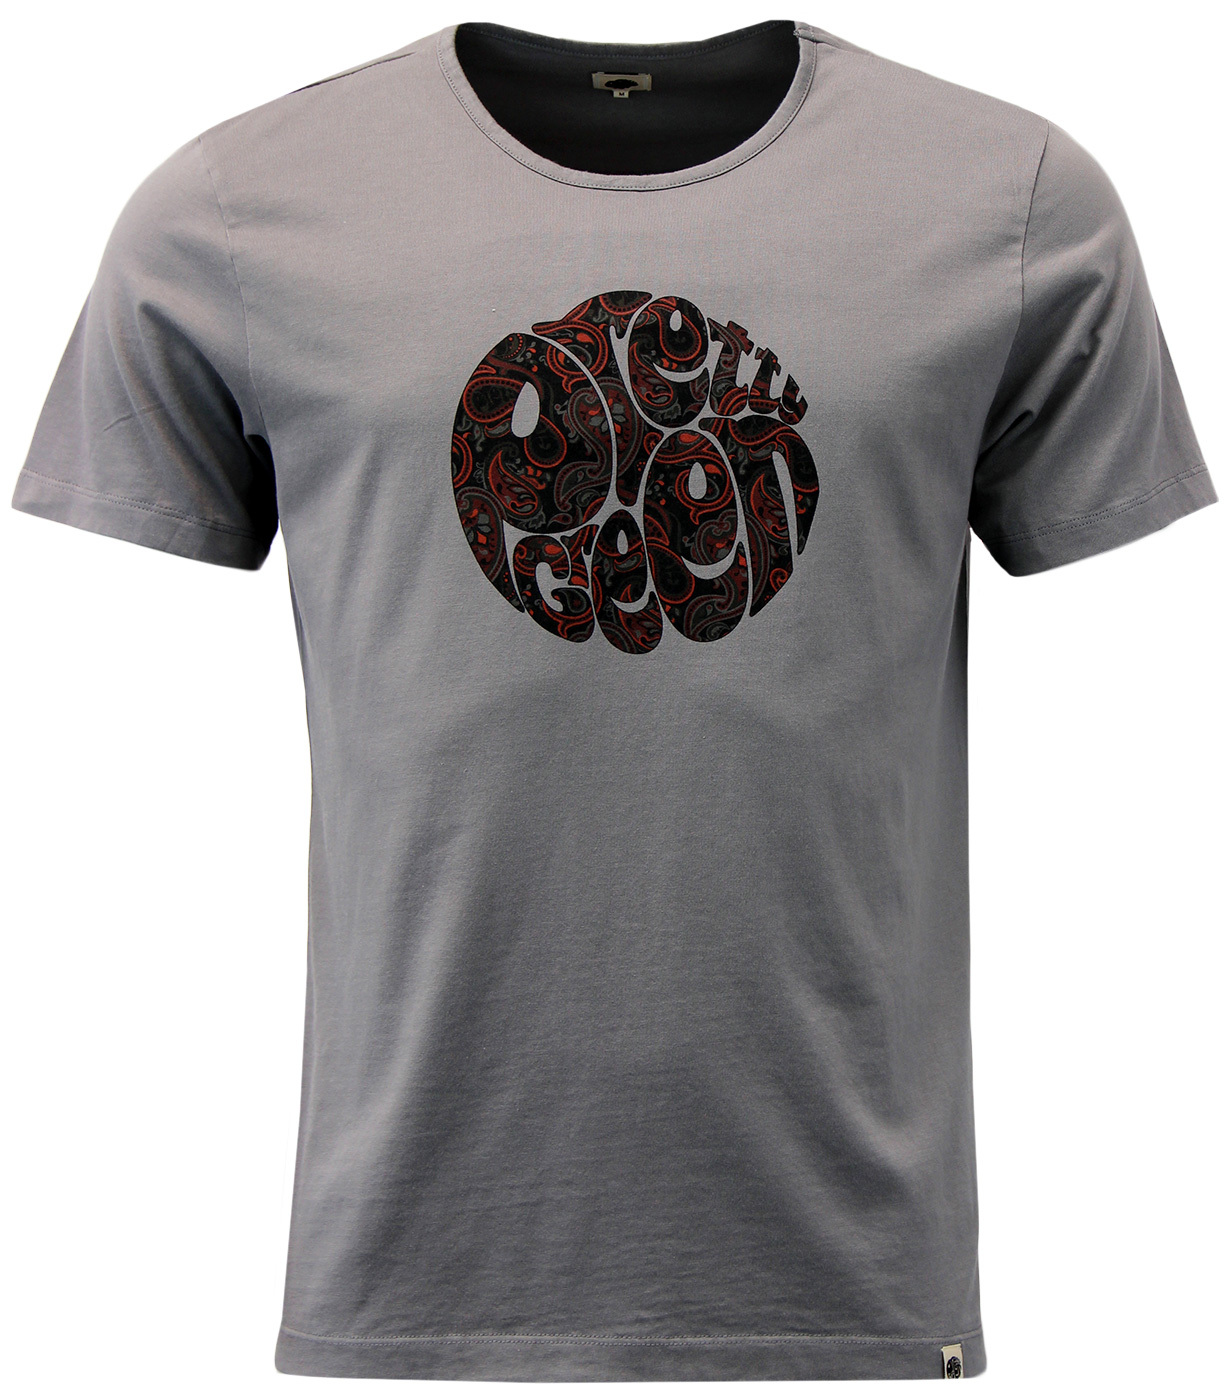 Turner PRETTY GREEN Sixties Mod Paisley Logo Tee